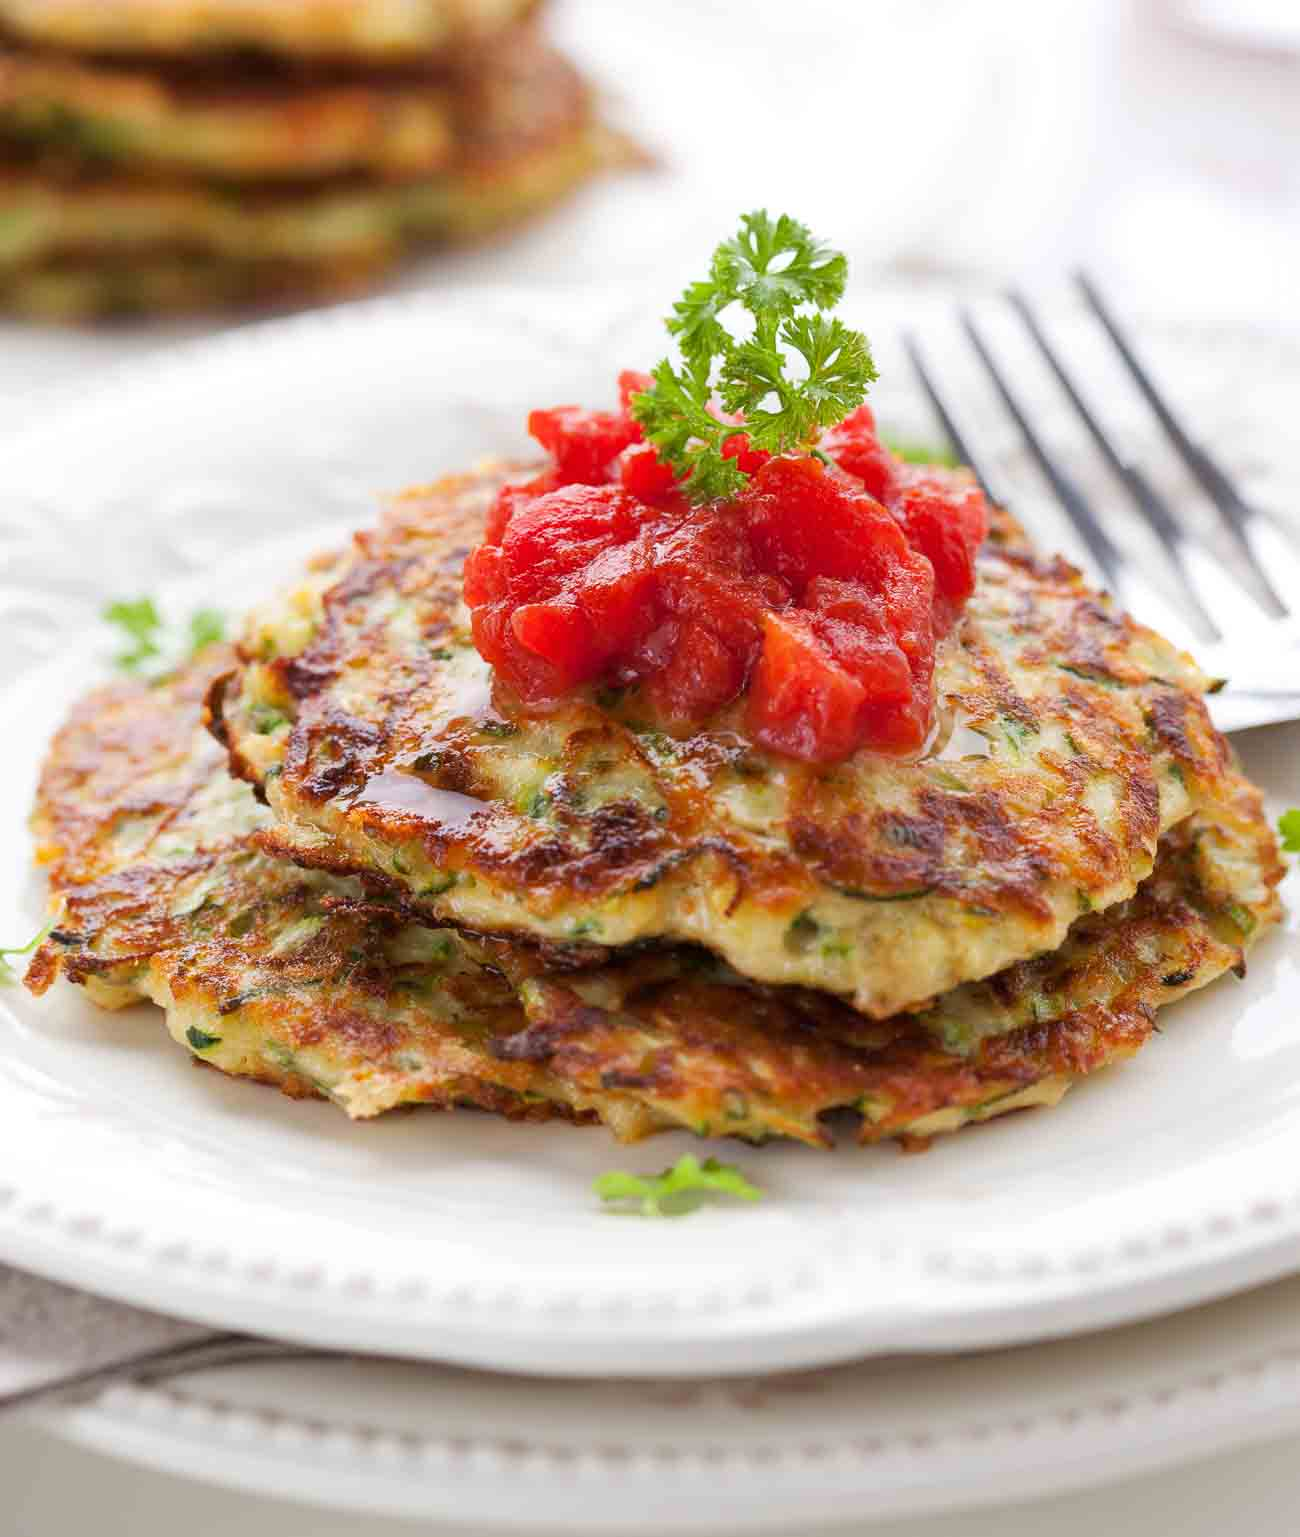 Zucchini Pancake Recipe With Tomato Salsa